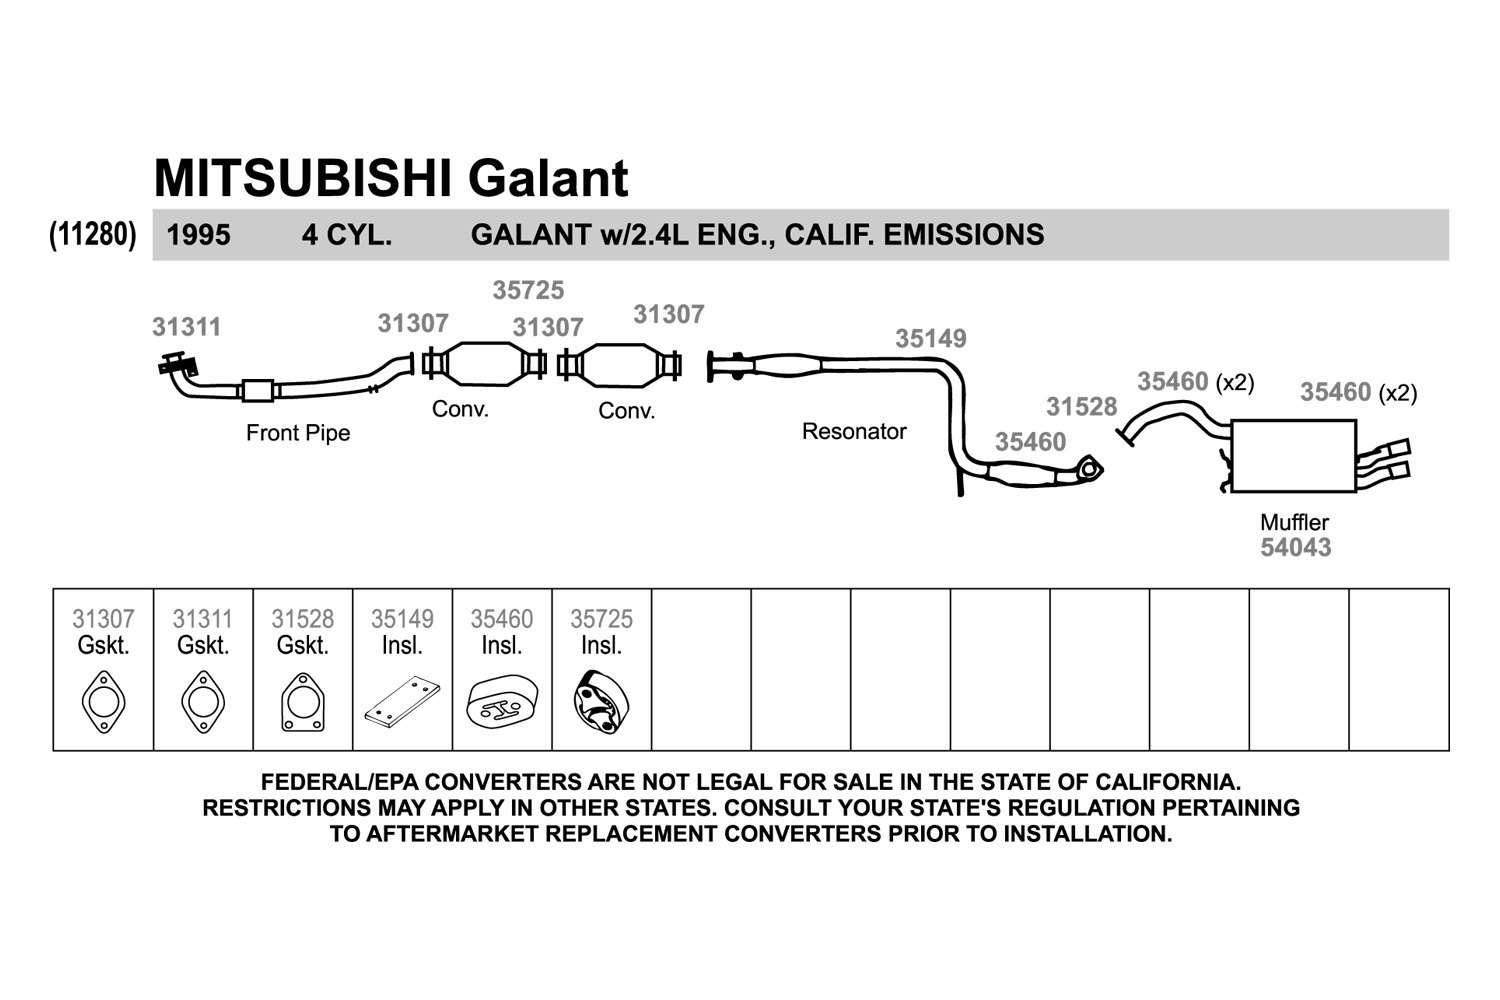 2000 Toyota Camry Emissions Diagram Trusted Wiring Diagrams For Exhaust Transmission